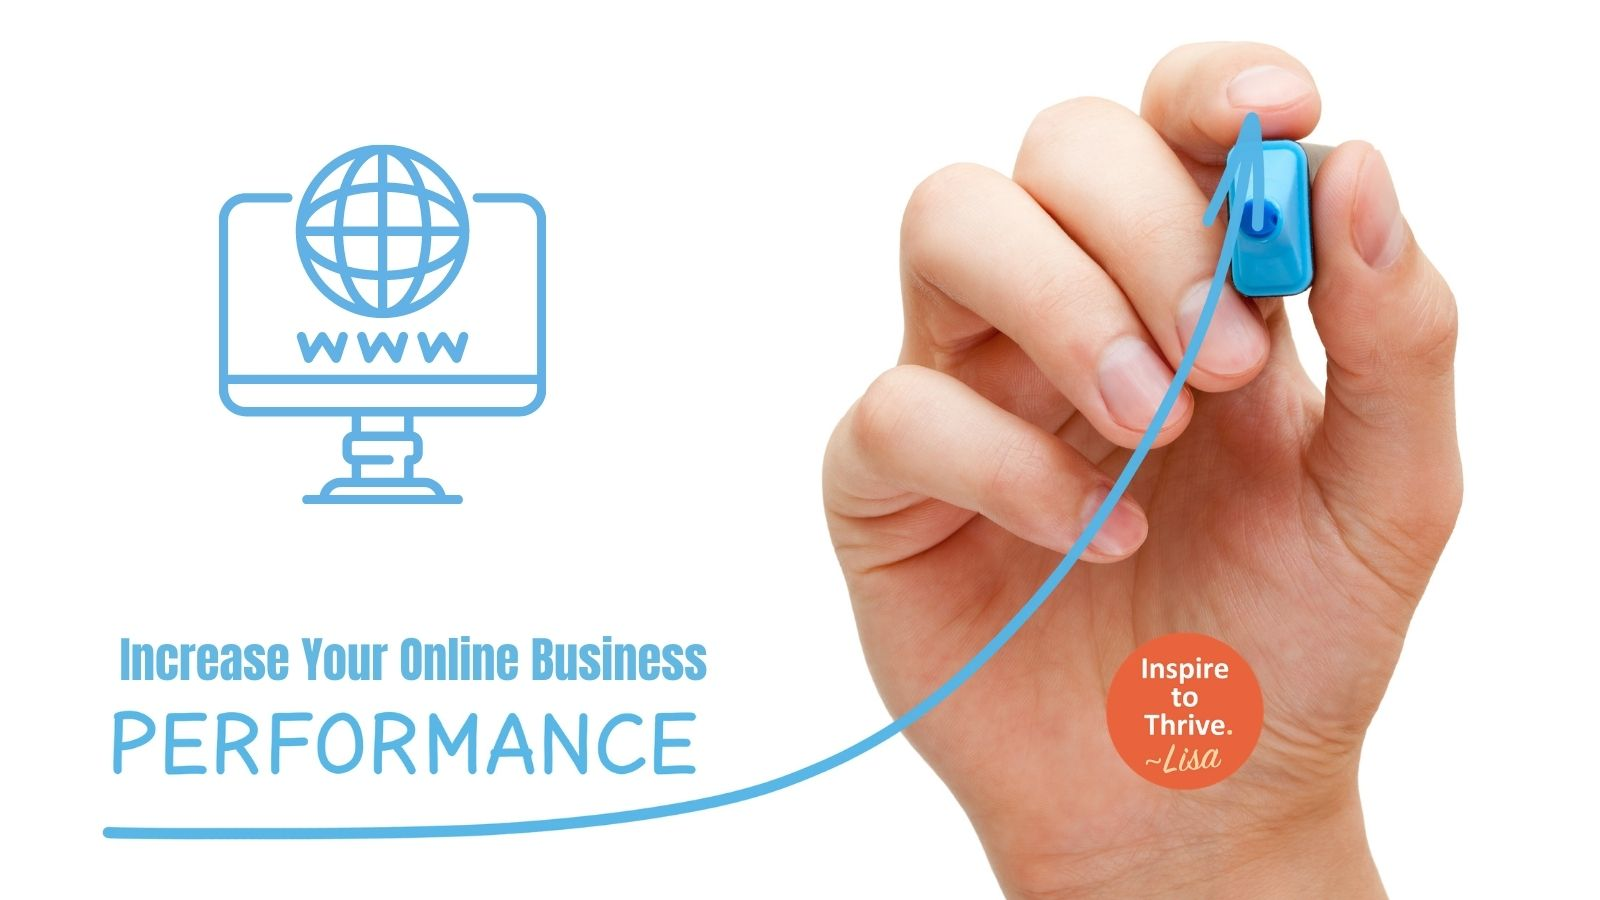 Increase your online business performance